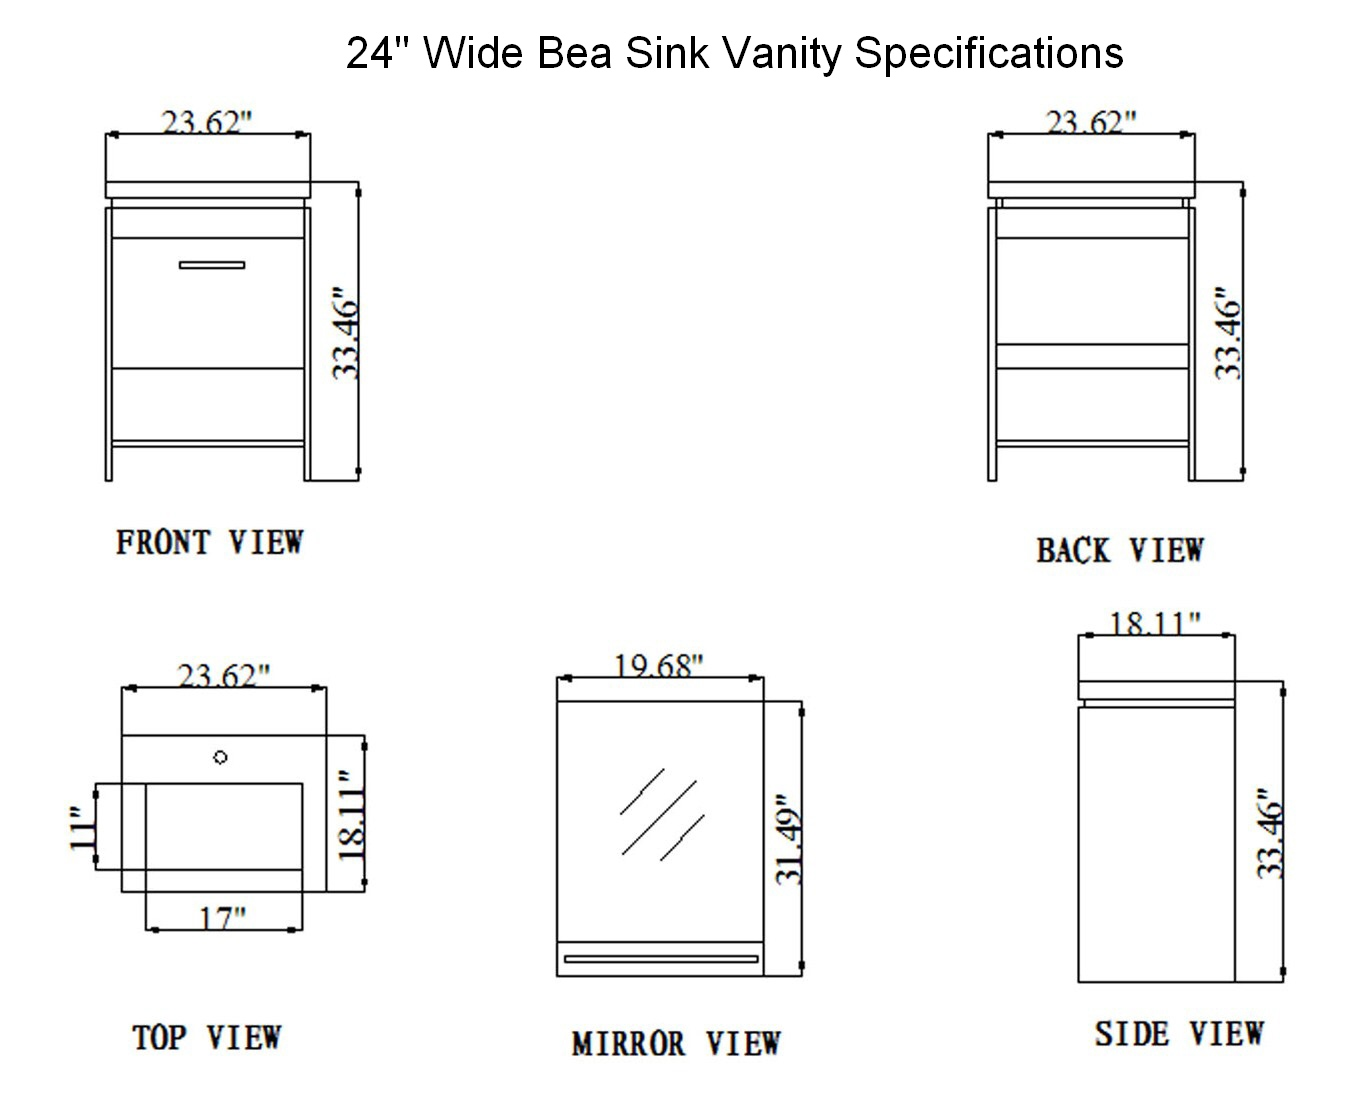 Bathroom Vanity Cabinet Dimensions 24-inch bea vanity | space saving vanity | contemporary sink cabinet